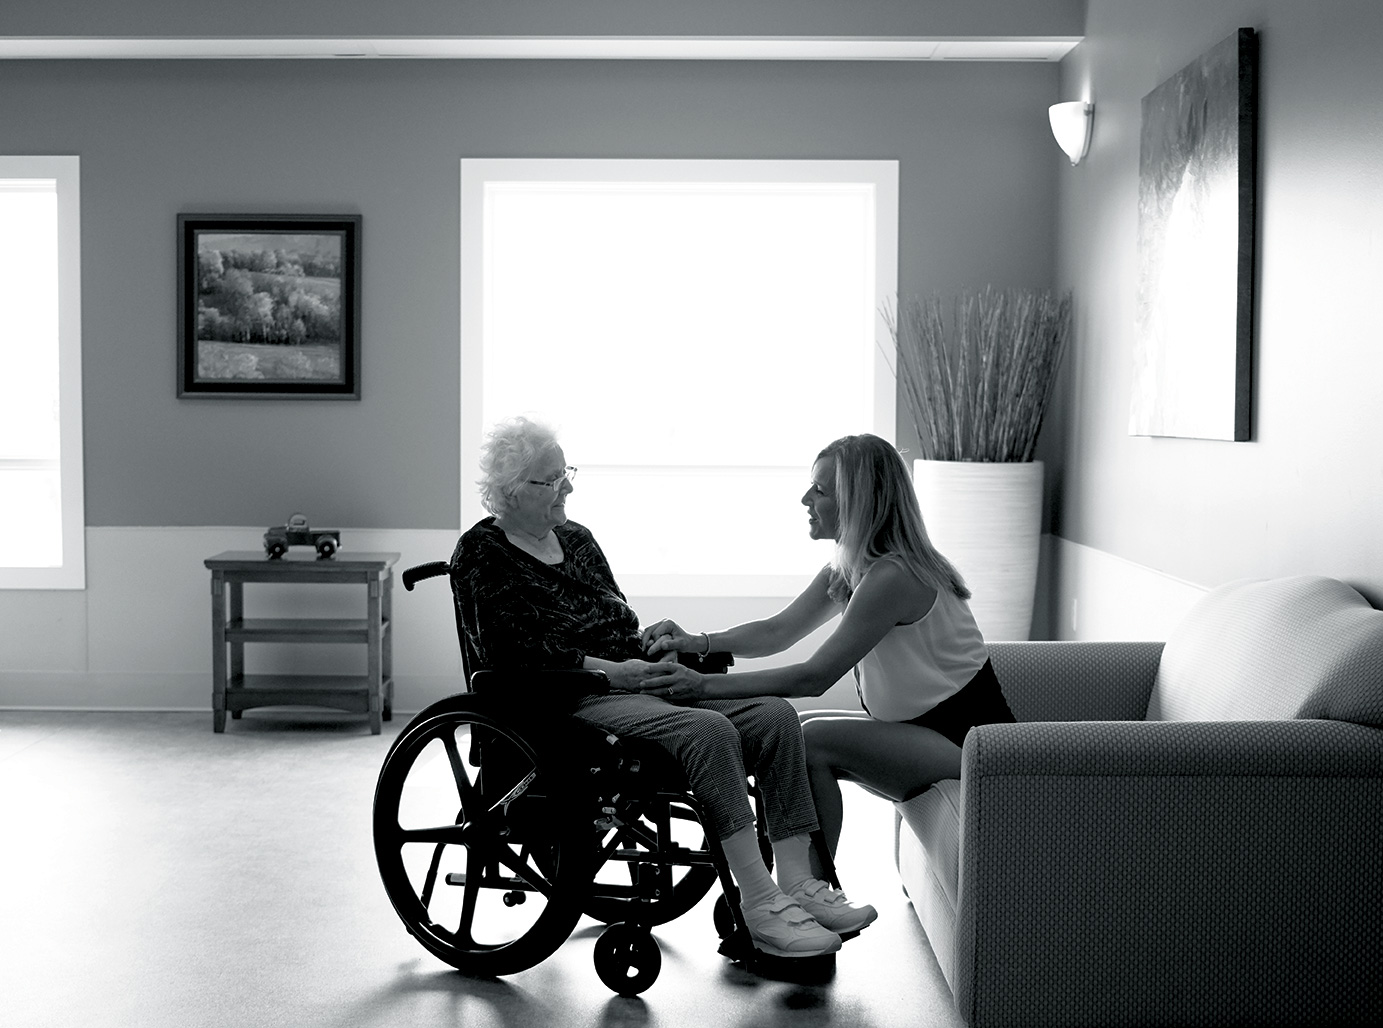 Christine Foran and her mother, Ethel. Photo by Erin Brooke Burns.